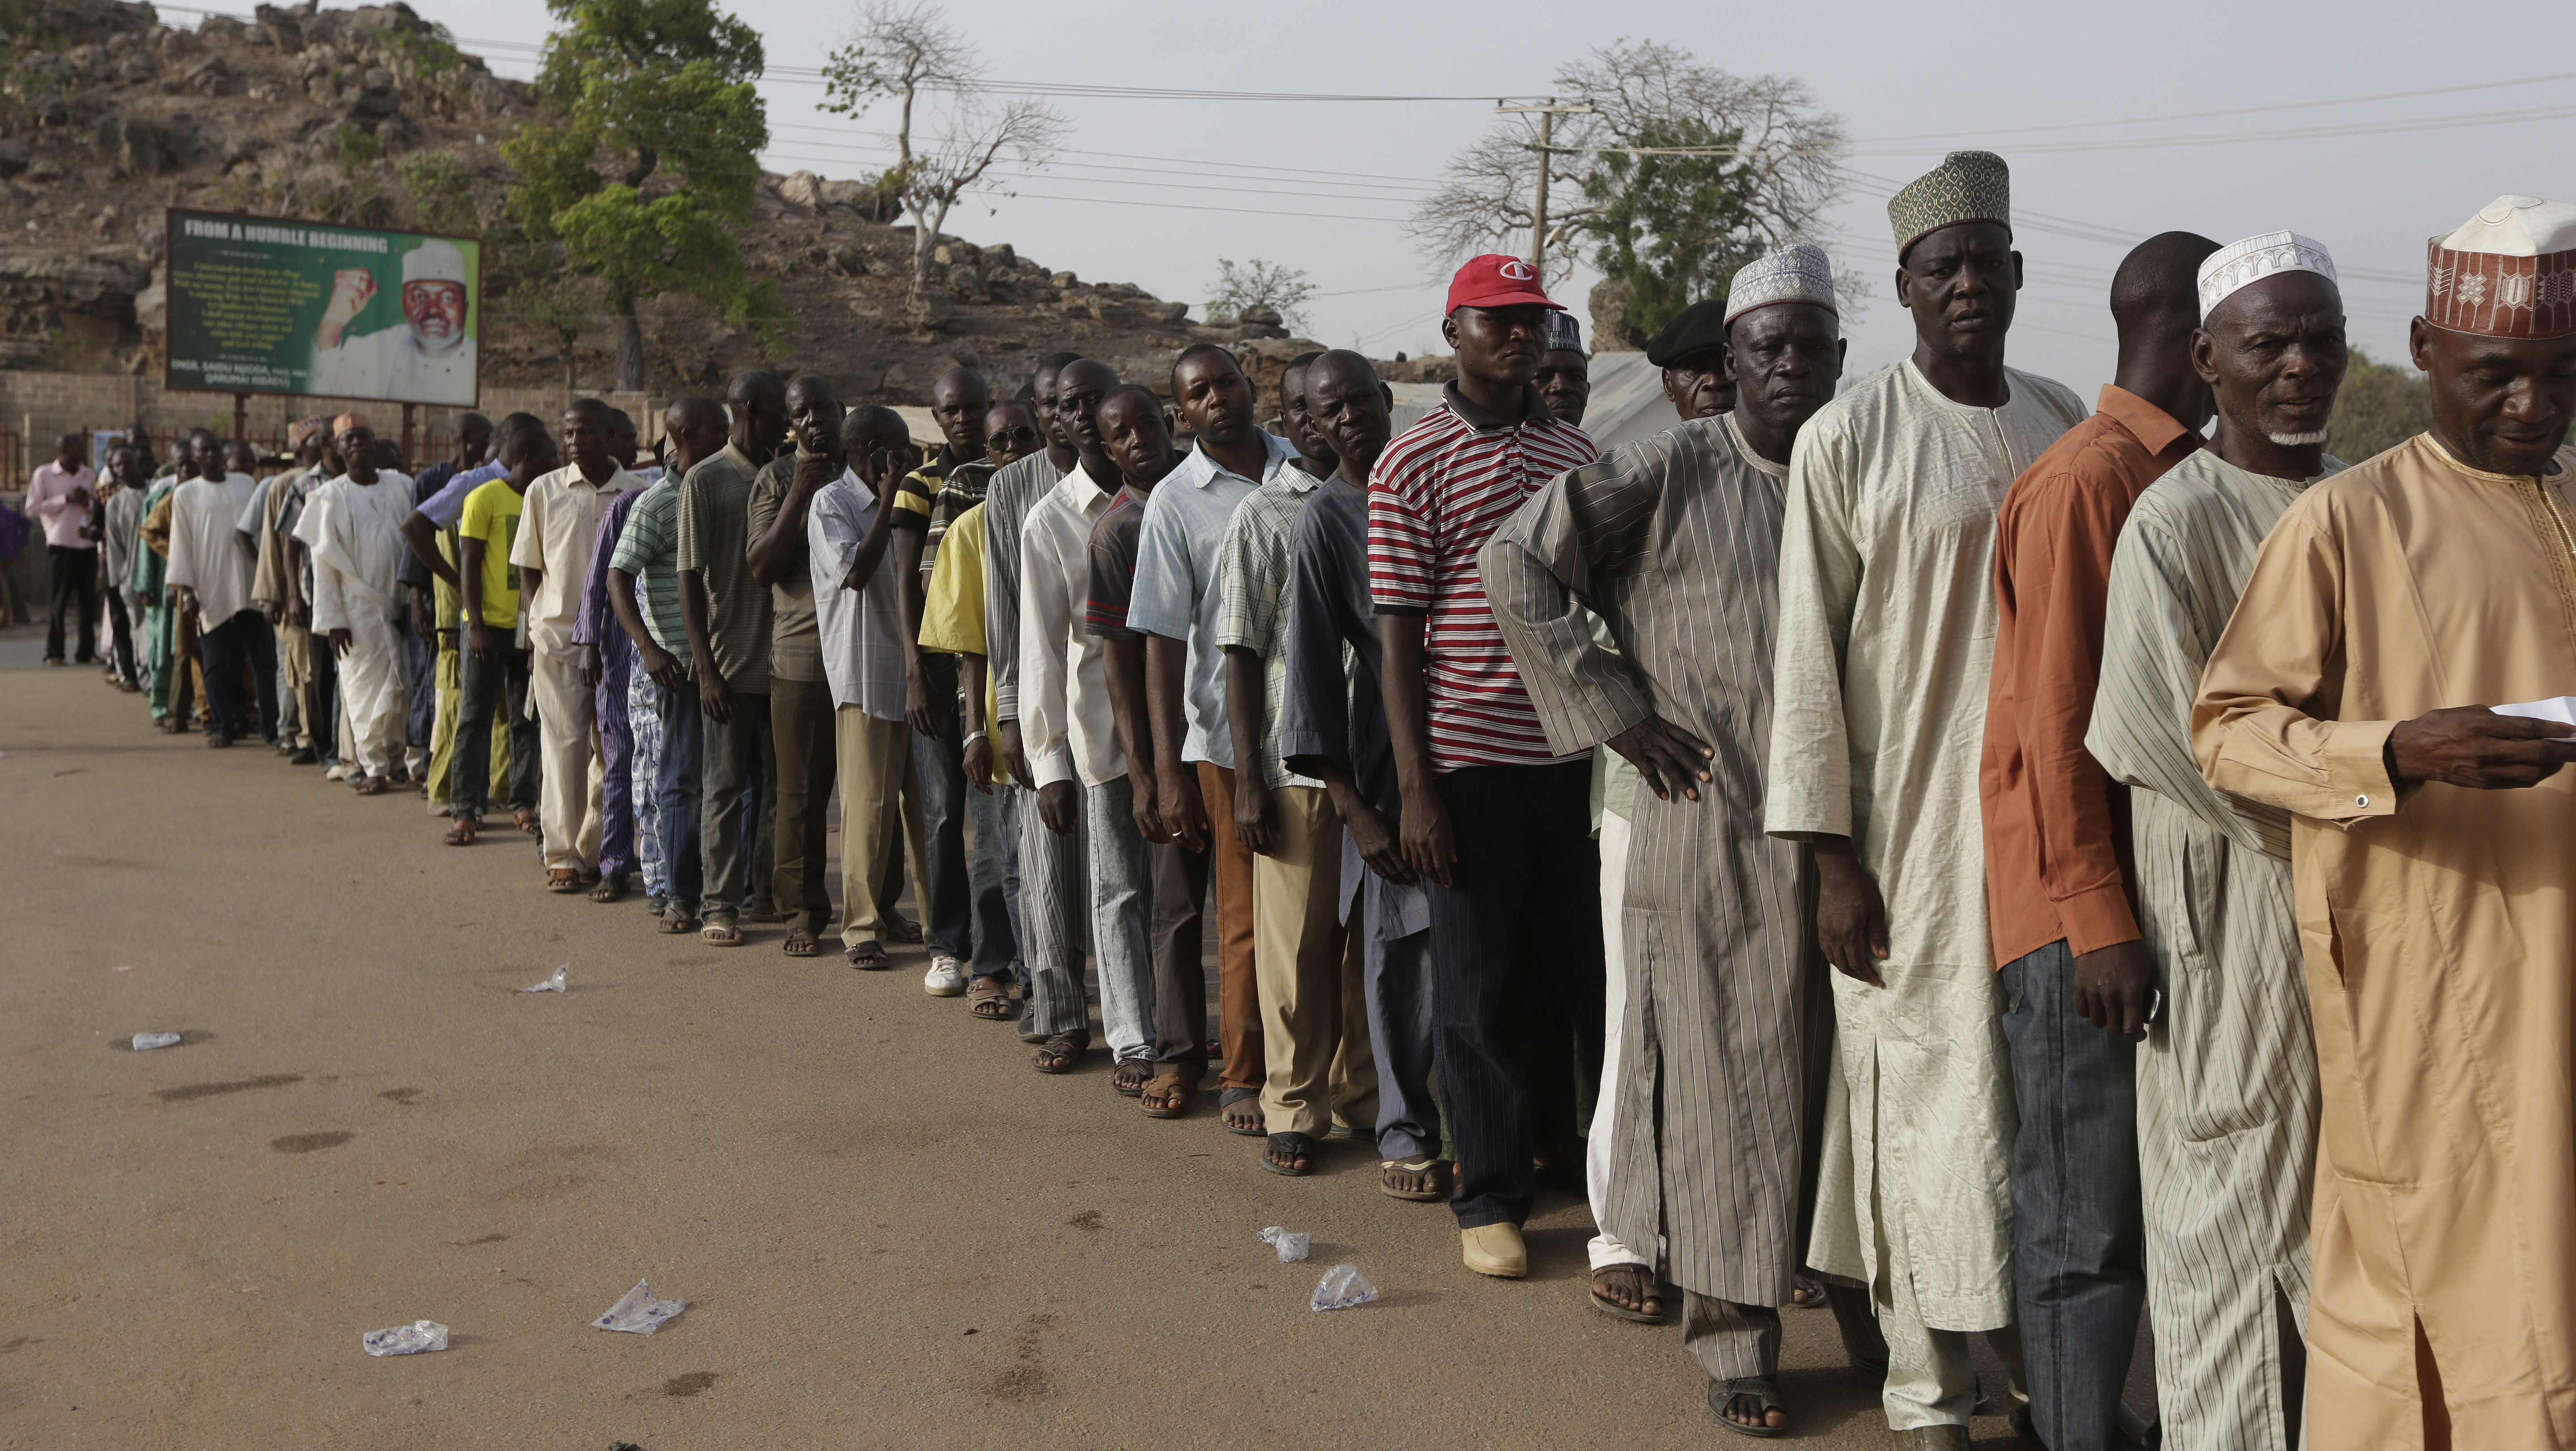 Second Day of Voting in Nigeria Ends With Sporadic Violence But No Major Incidents